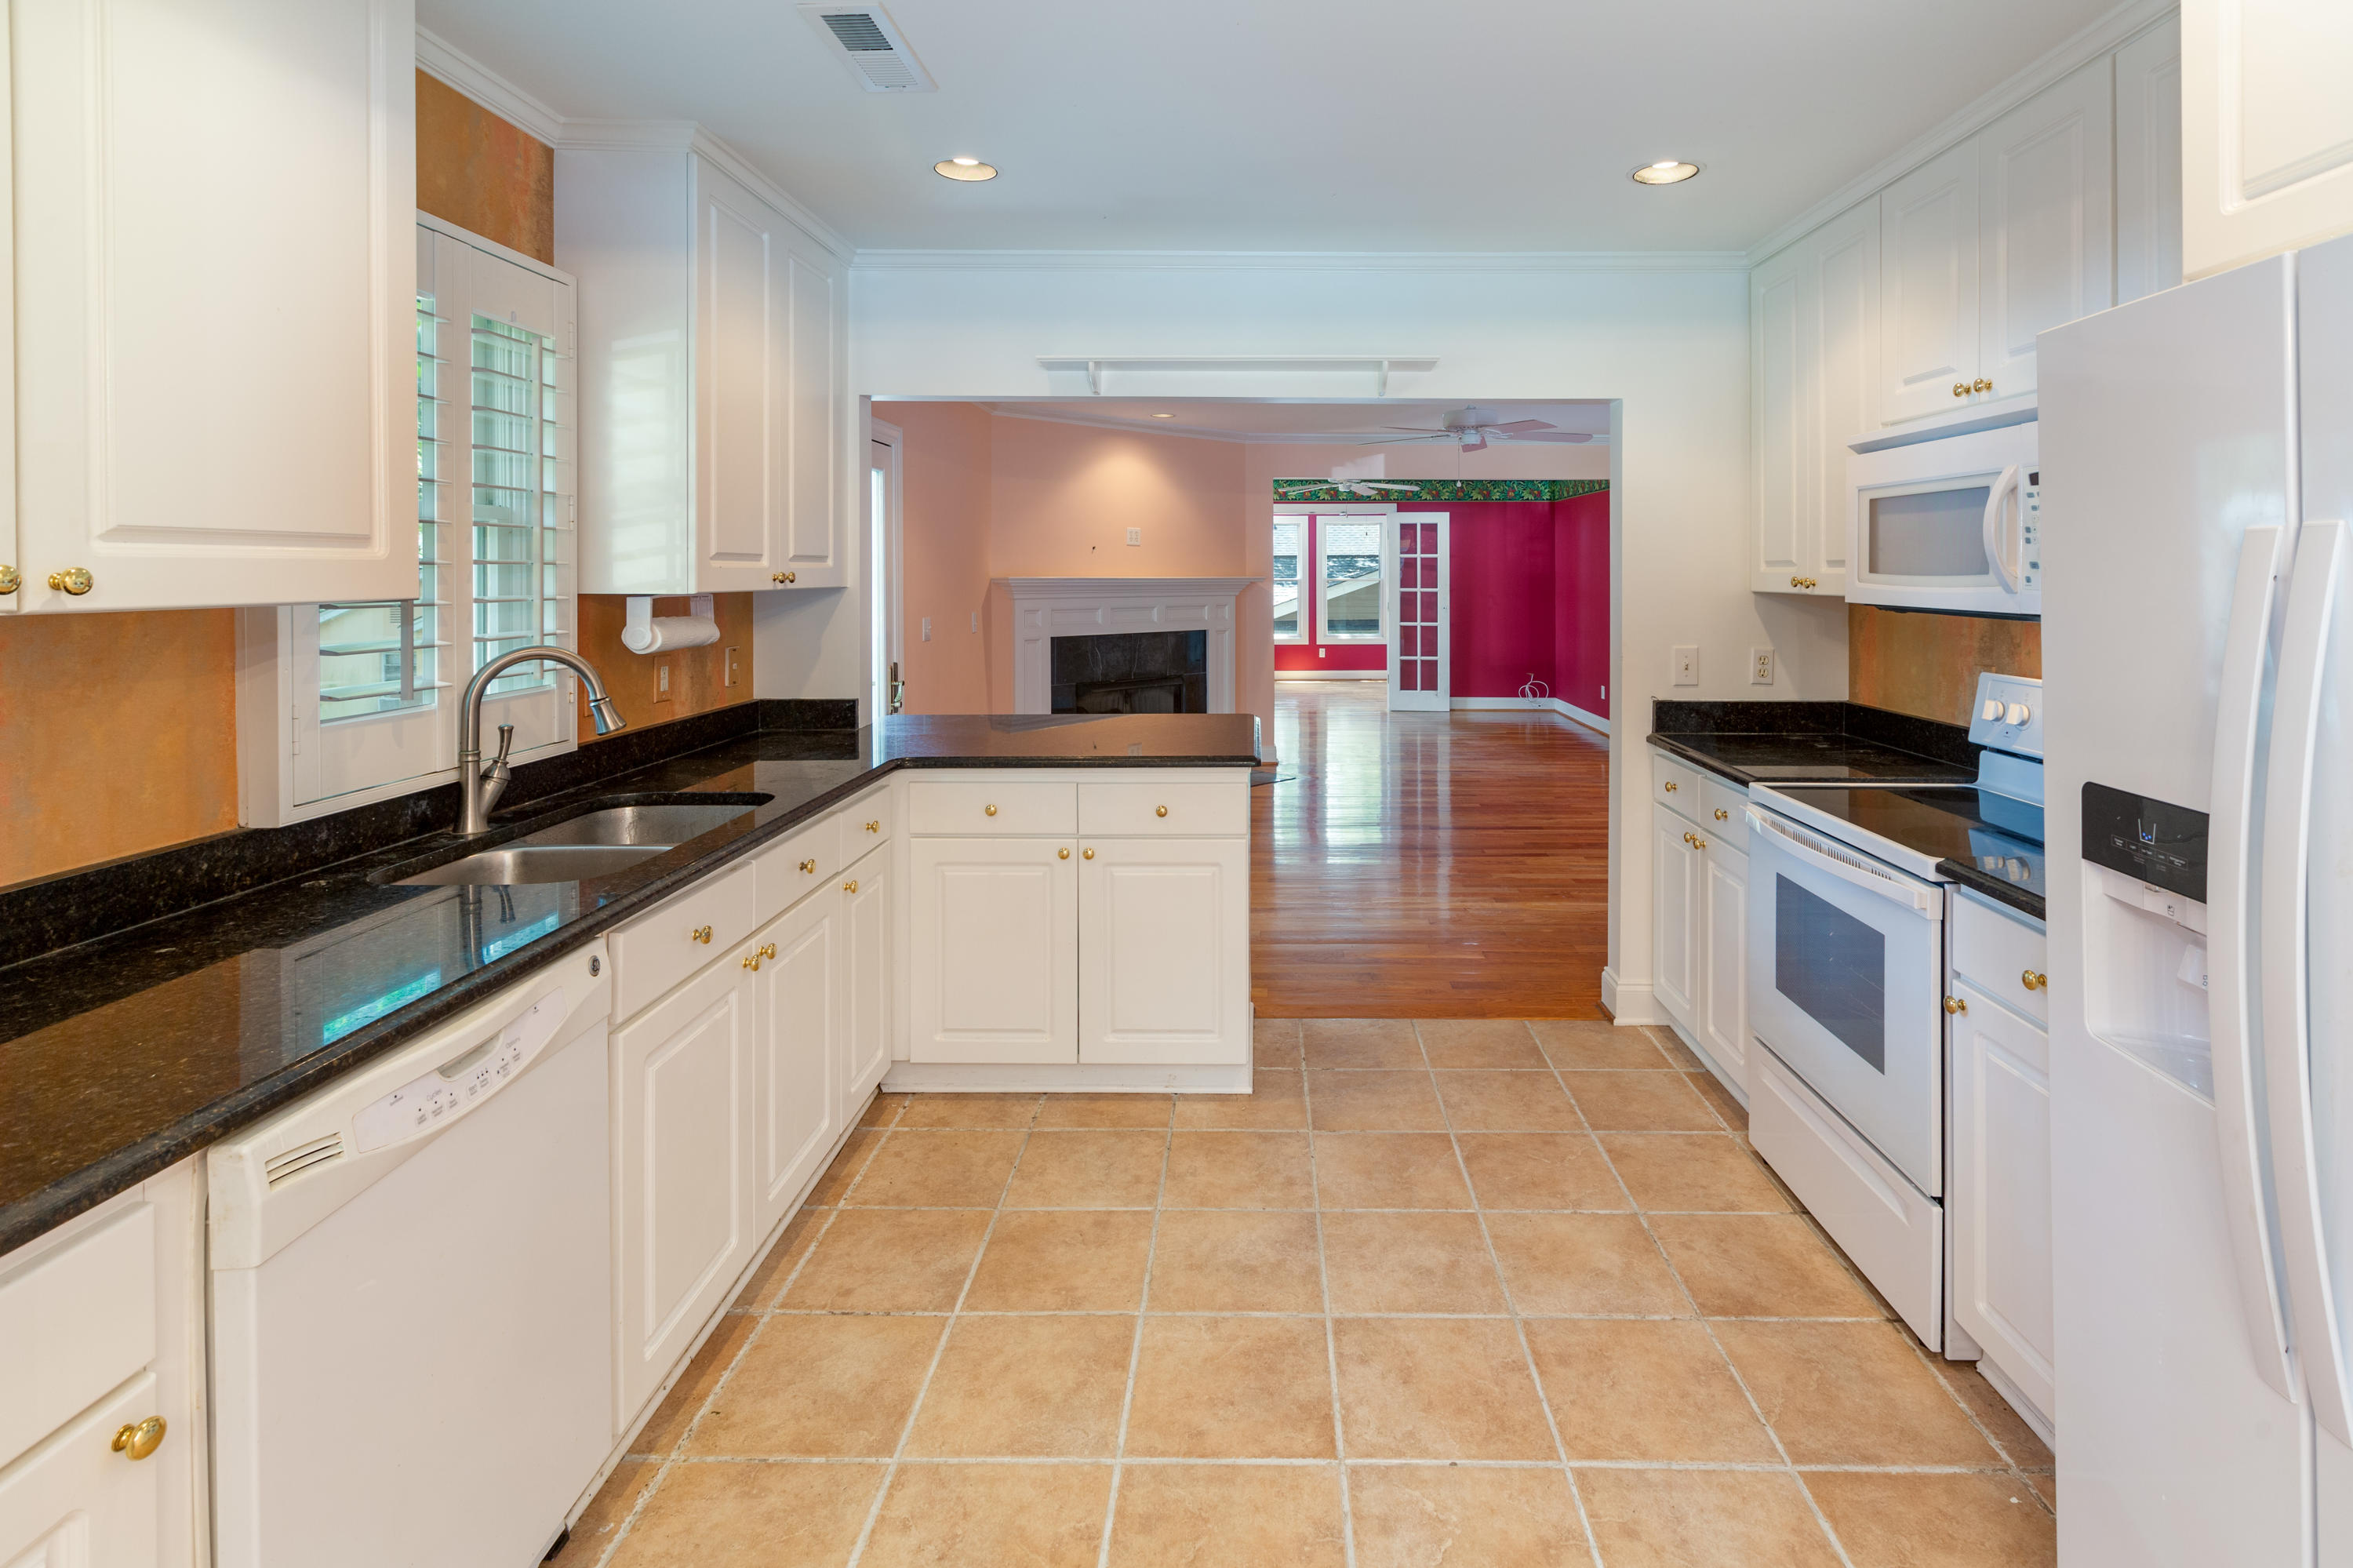 Riverland Terrace Homes For Sale - 2115 Welch, Charleston, SC - 13